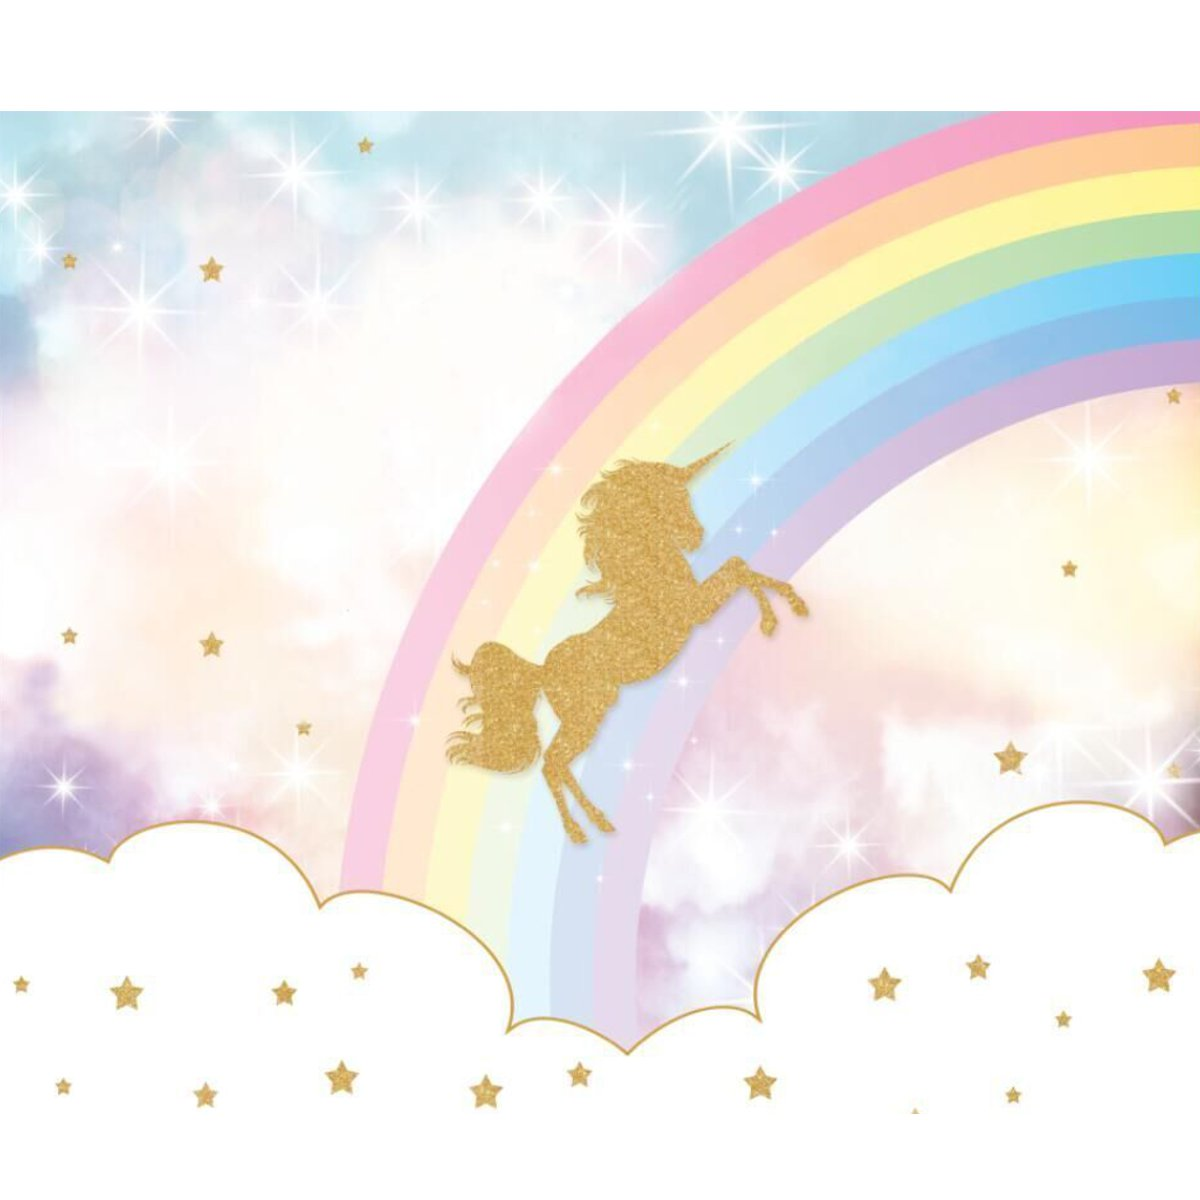 5x3ft 7x5ft Rainbow Sky Gold Unicorn Photography Backdrop Studio Prop Background